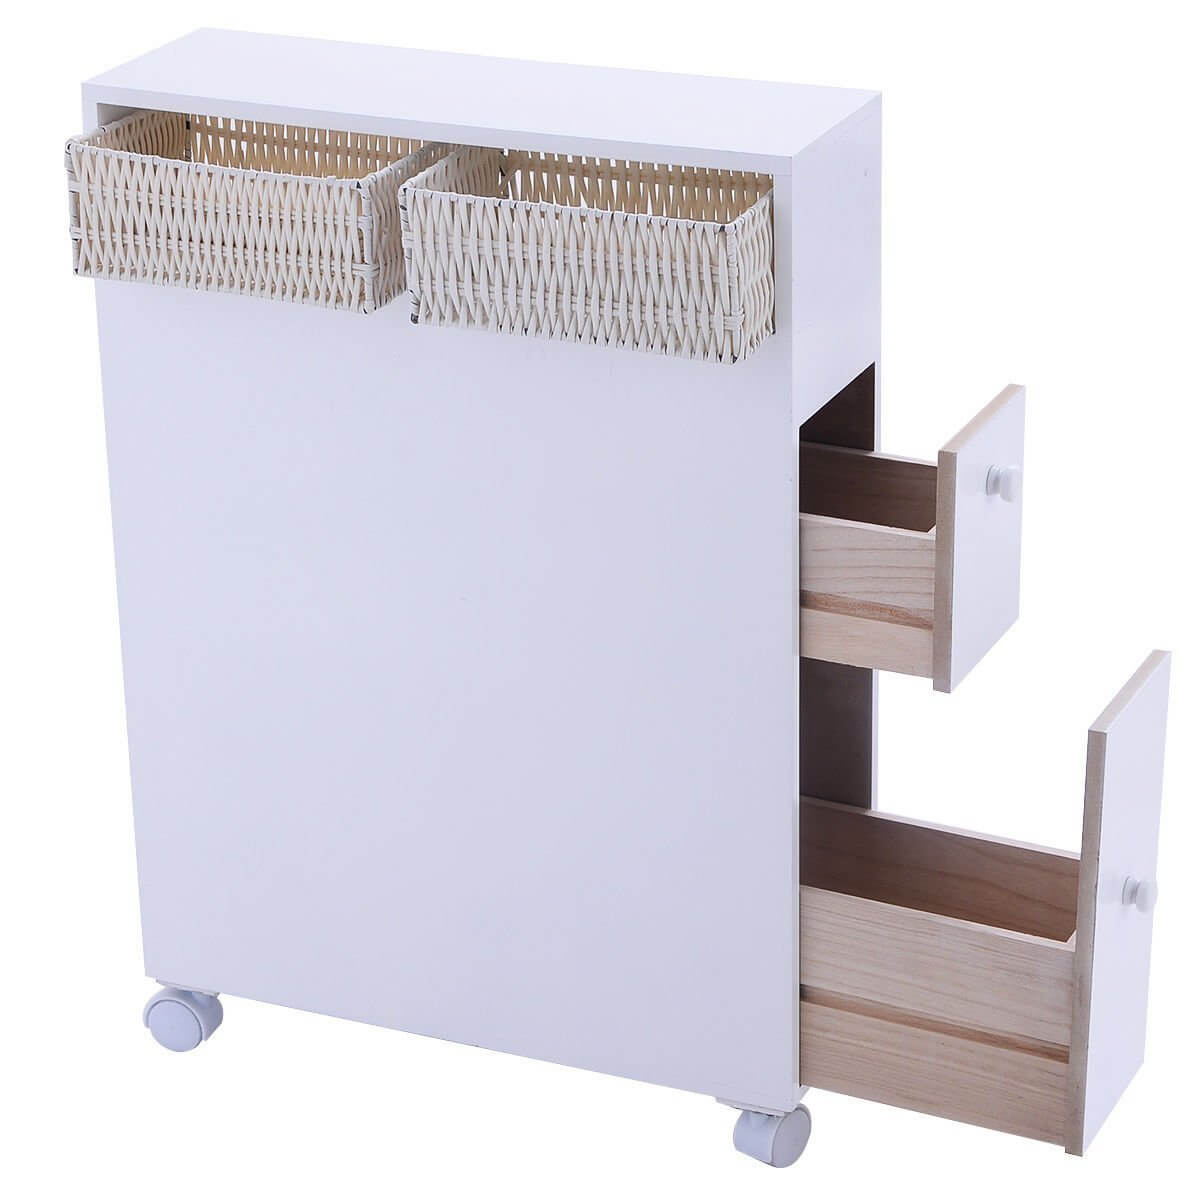 Tangkula Wood Floor Bathroom Storage Rolling Cabinet Holder